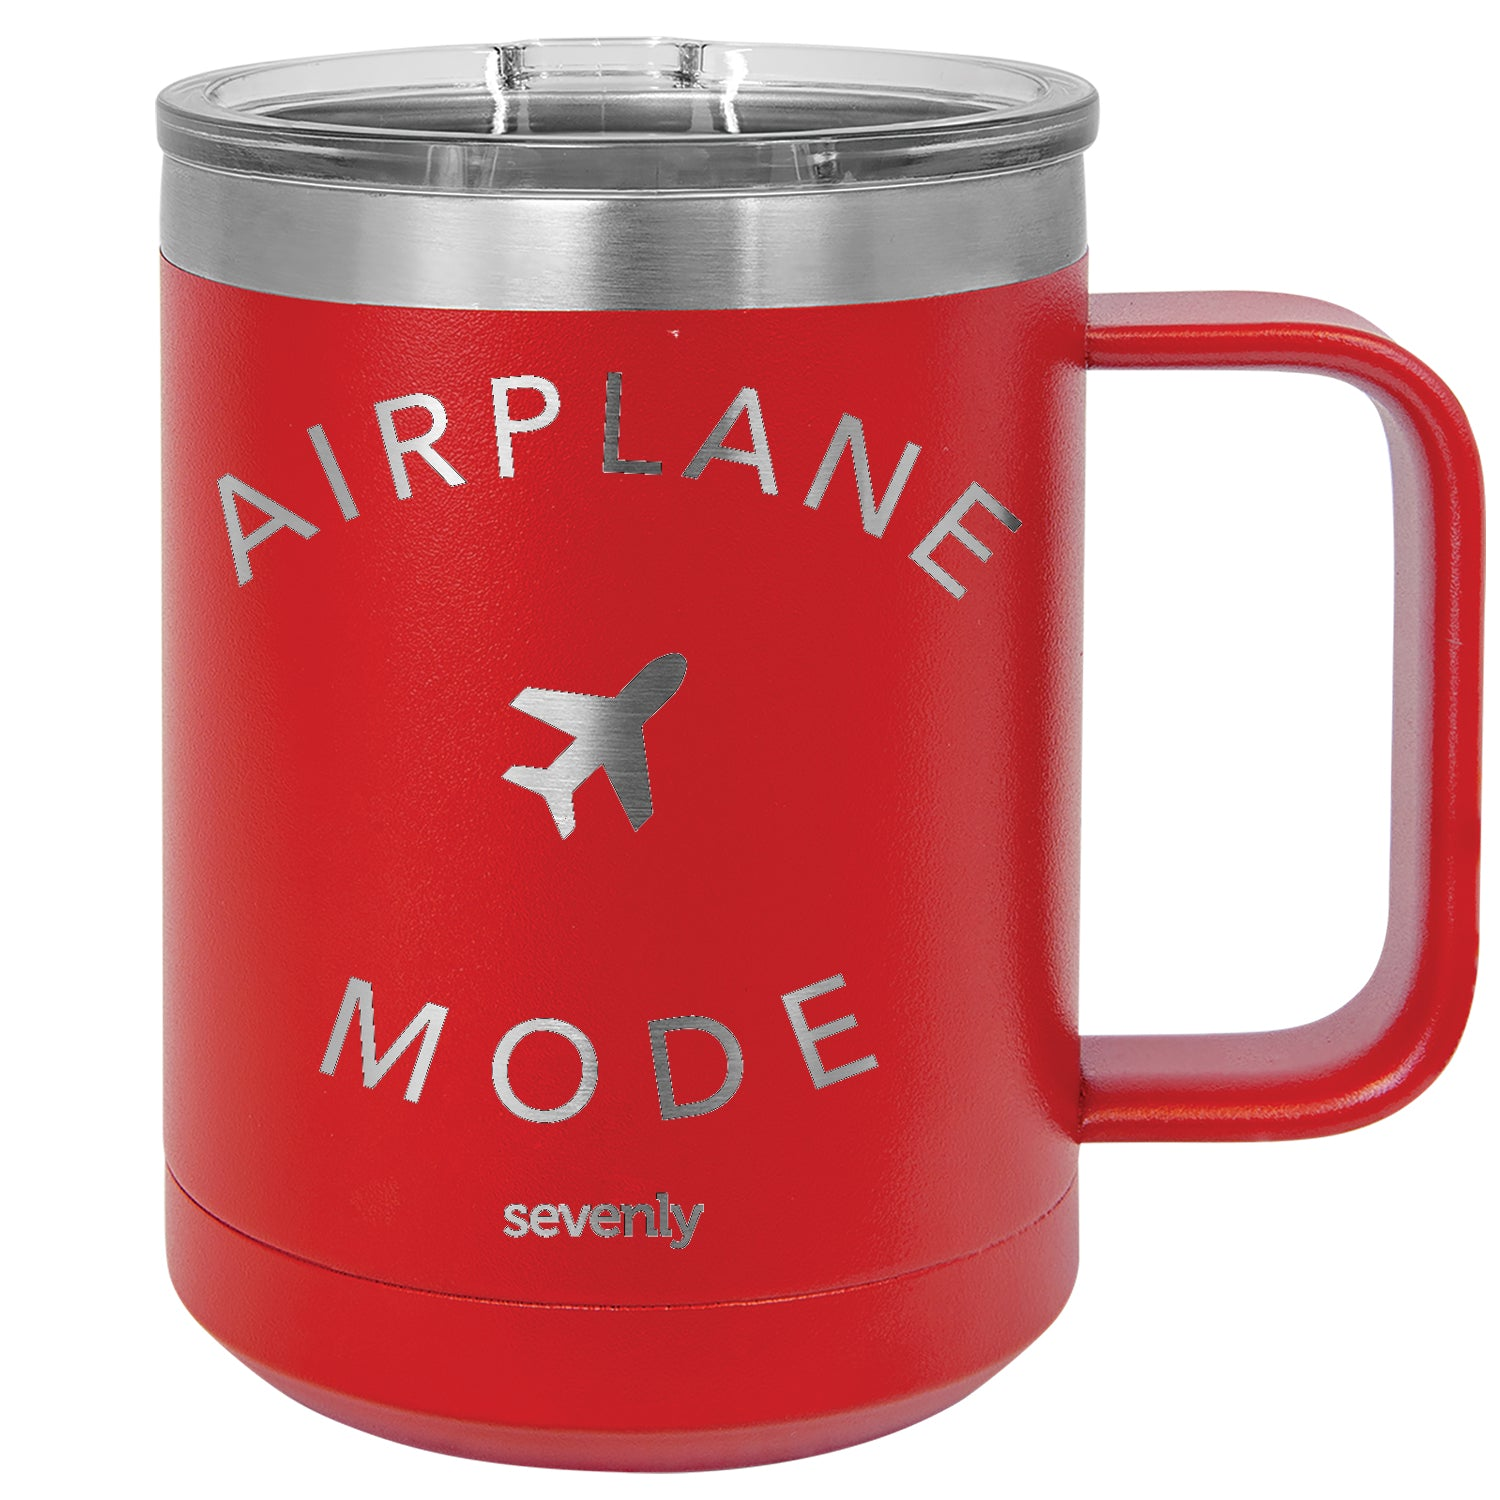 Airplane Mode Insulated Mug Drinkware